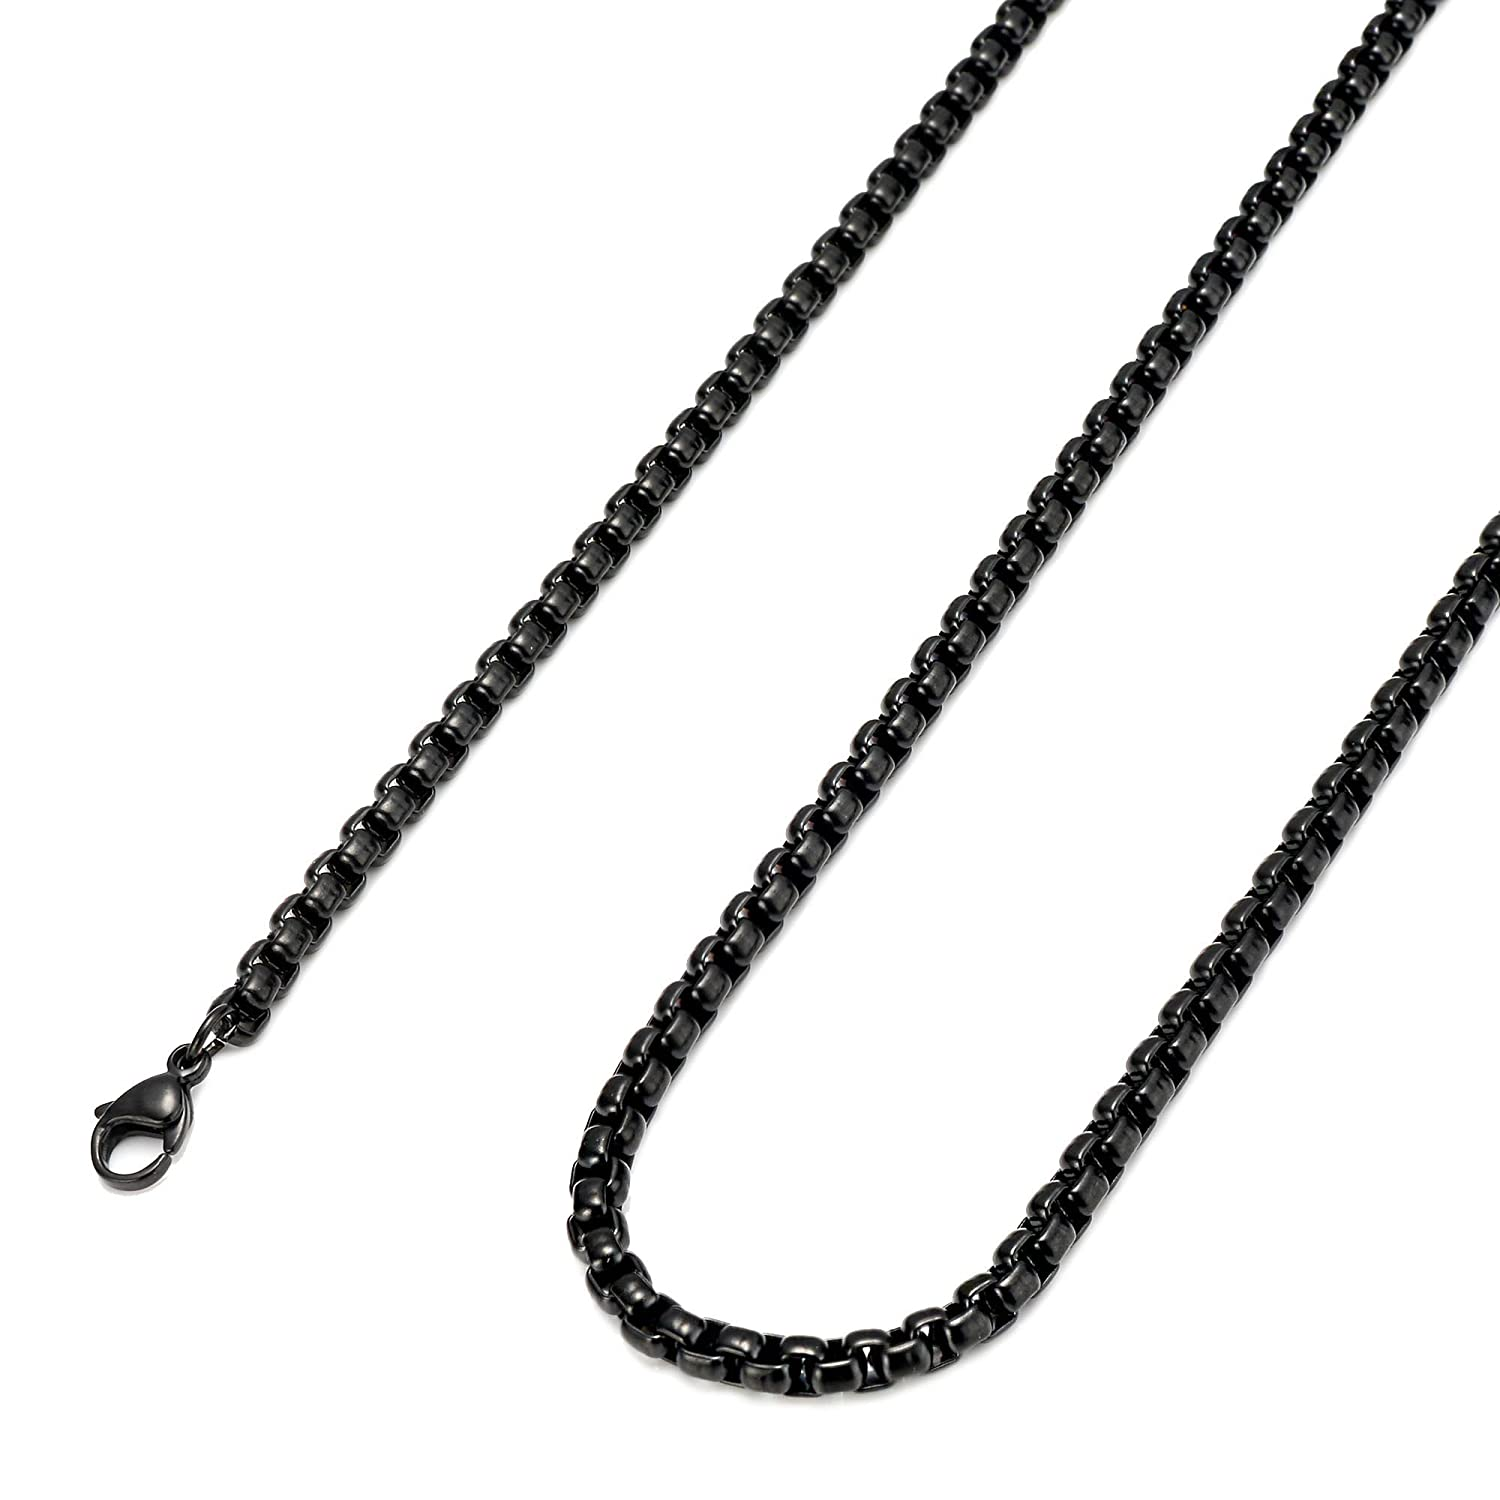 FIBO STEEL 2-4MM Stainless Steel Mens Womens Necklace Rolo Cable Chain, 16-36 inches 16 inches 3MWNZ093-2MM-41